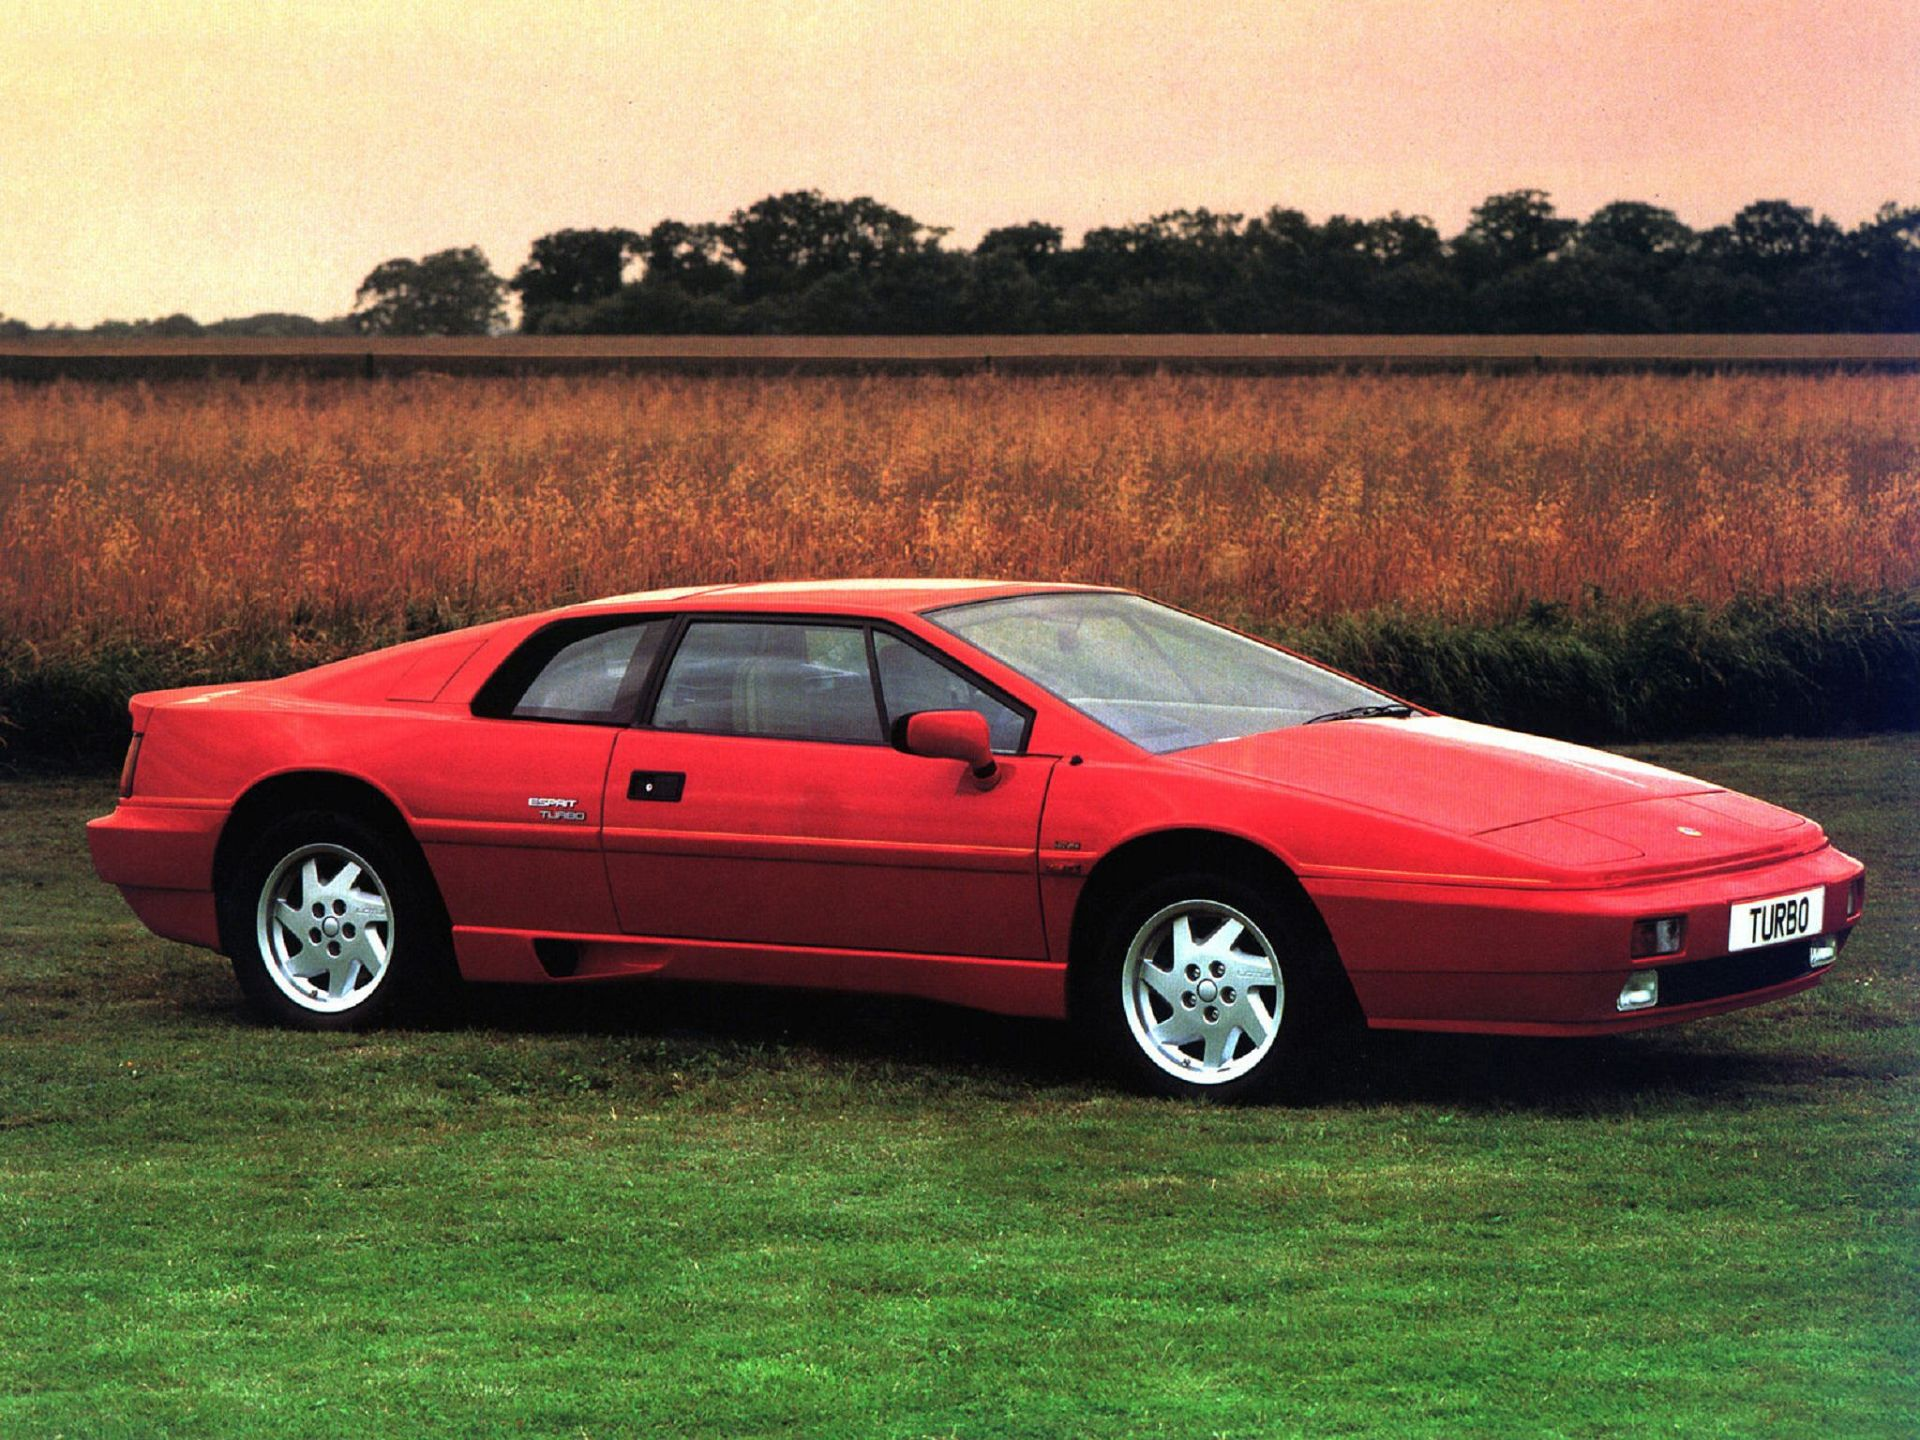 1980, Old, Red, Lotus Esprit, Turbo | My walls